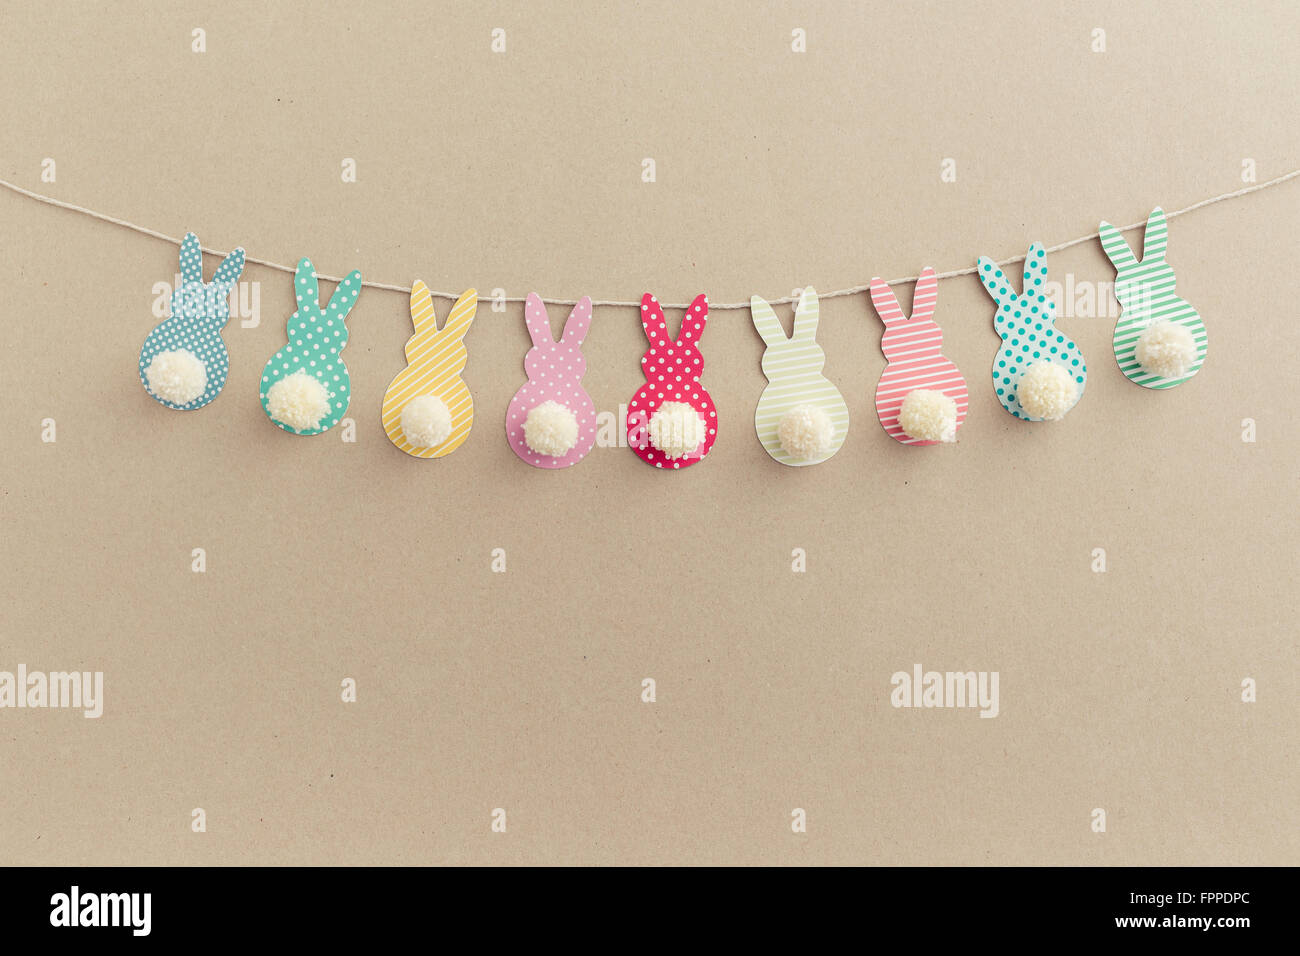 Easter Bunny Banner. Cute bunny shapes with yarn pom pom tails. - Stock Image